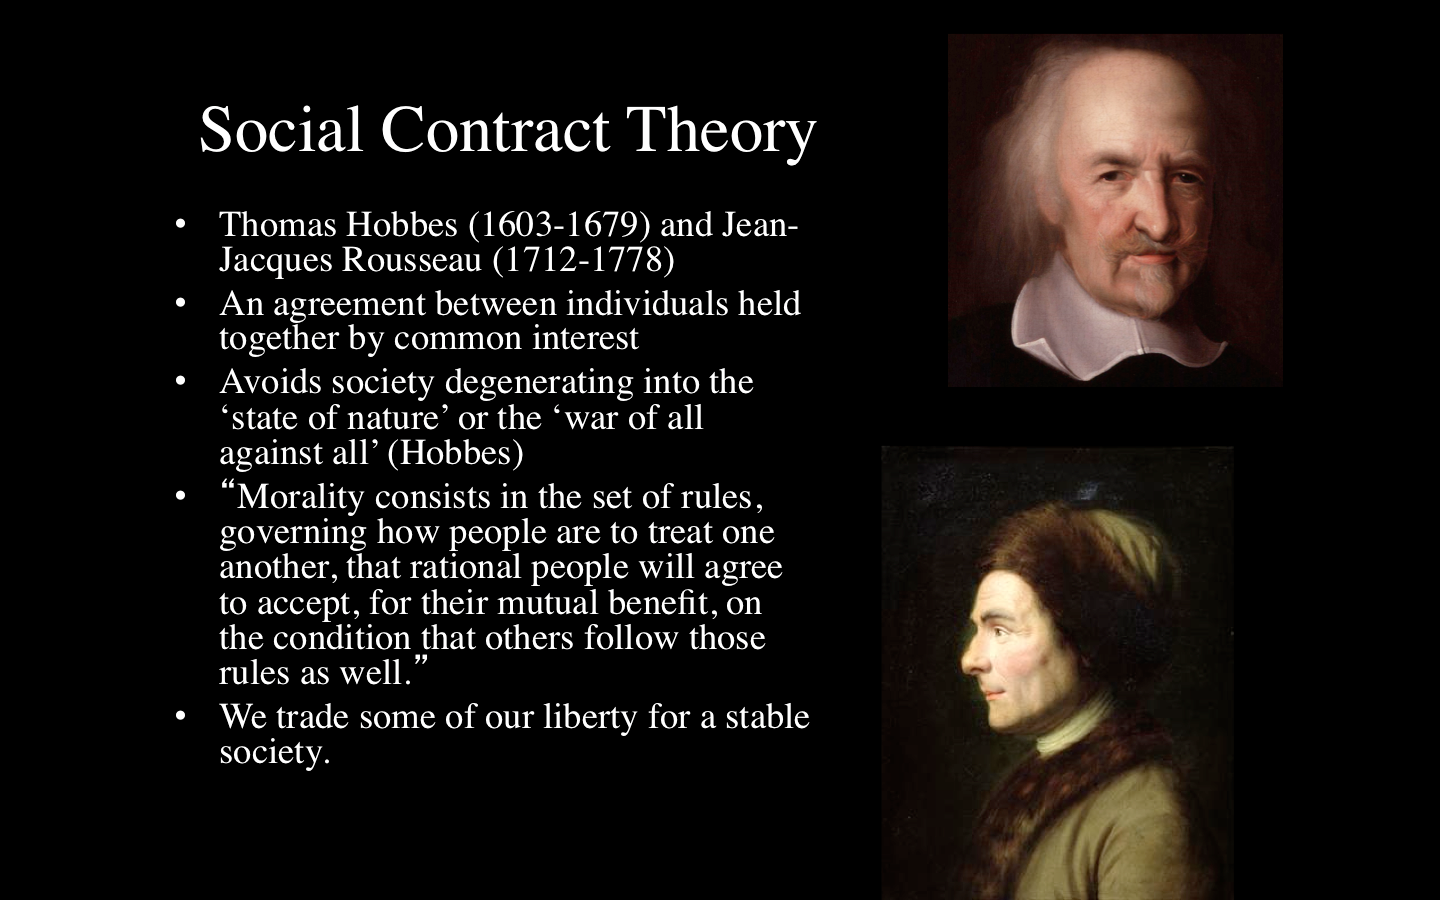 Thomas Hobbes Social Contract Quotes Quotes About Social Contract 62 Quotes